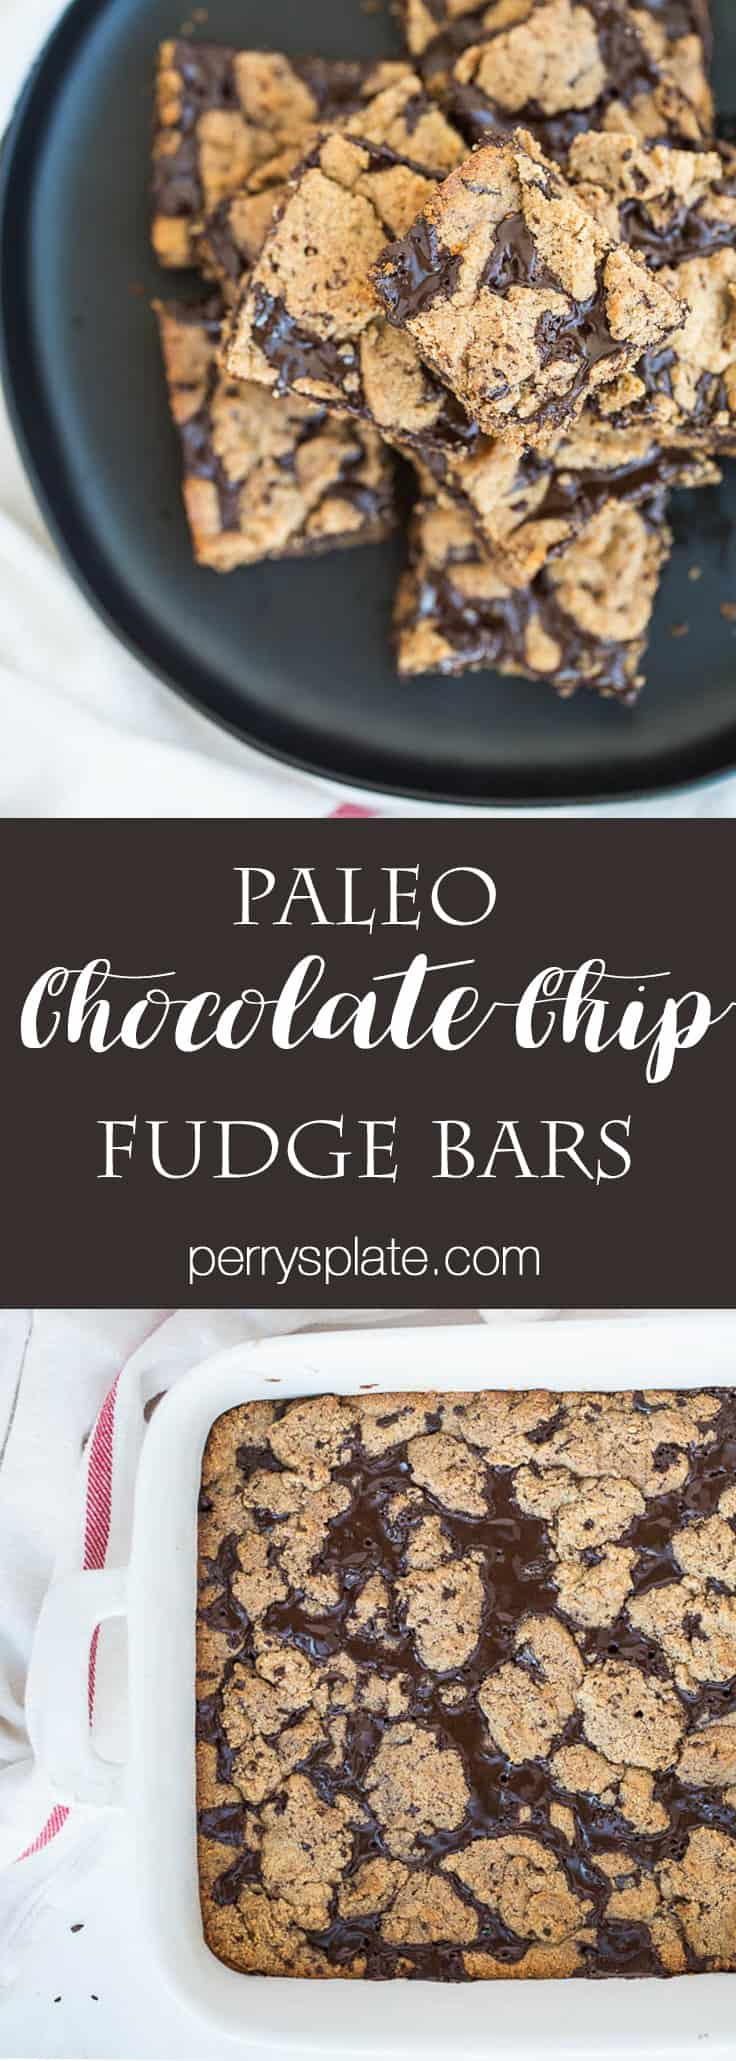 Paleo Chocolate Chip Fudge Bars | paleo dessert recipes | gluten-free cookie recipes | chocolate recipes | chocolate chip cookie recipes | perrysplate.com